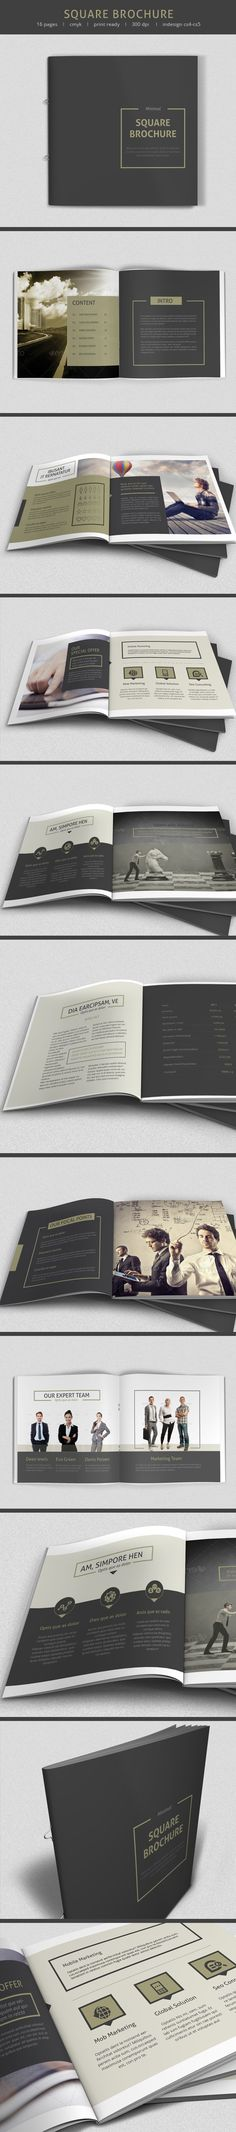 Minimal square Brochure by sz 81, via Behance